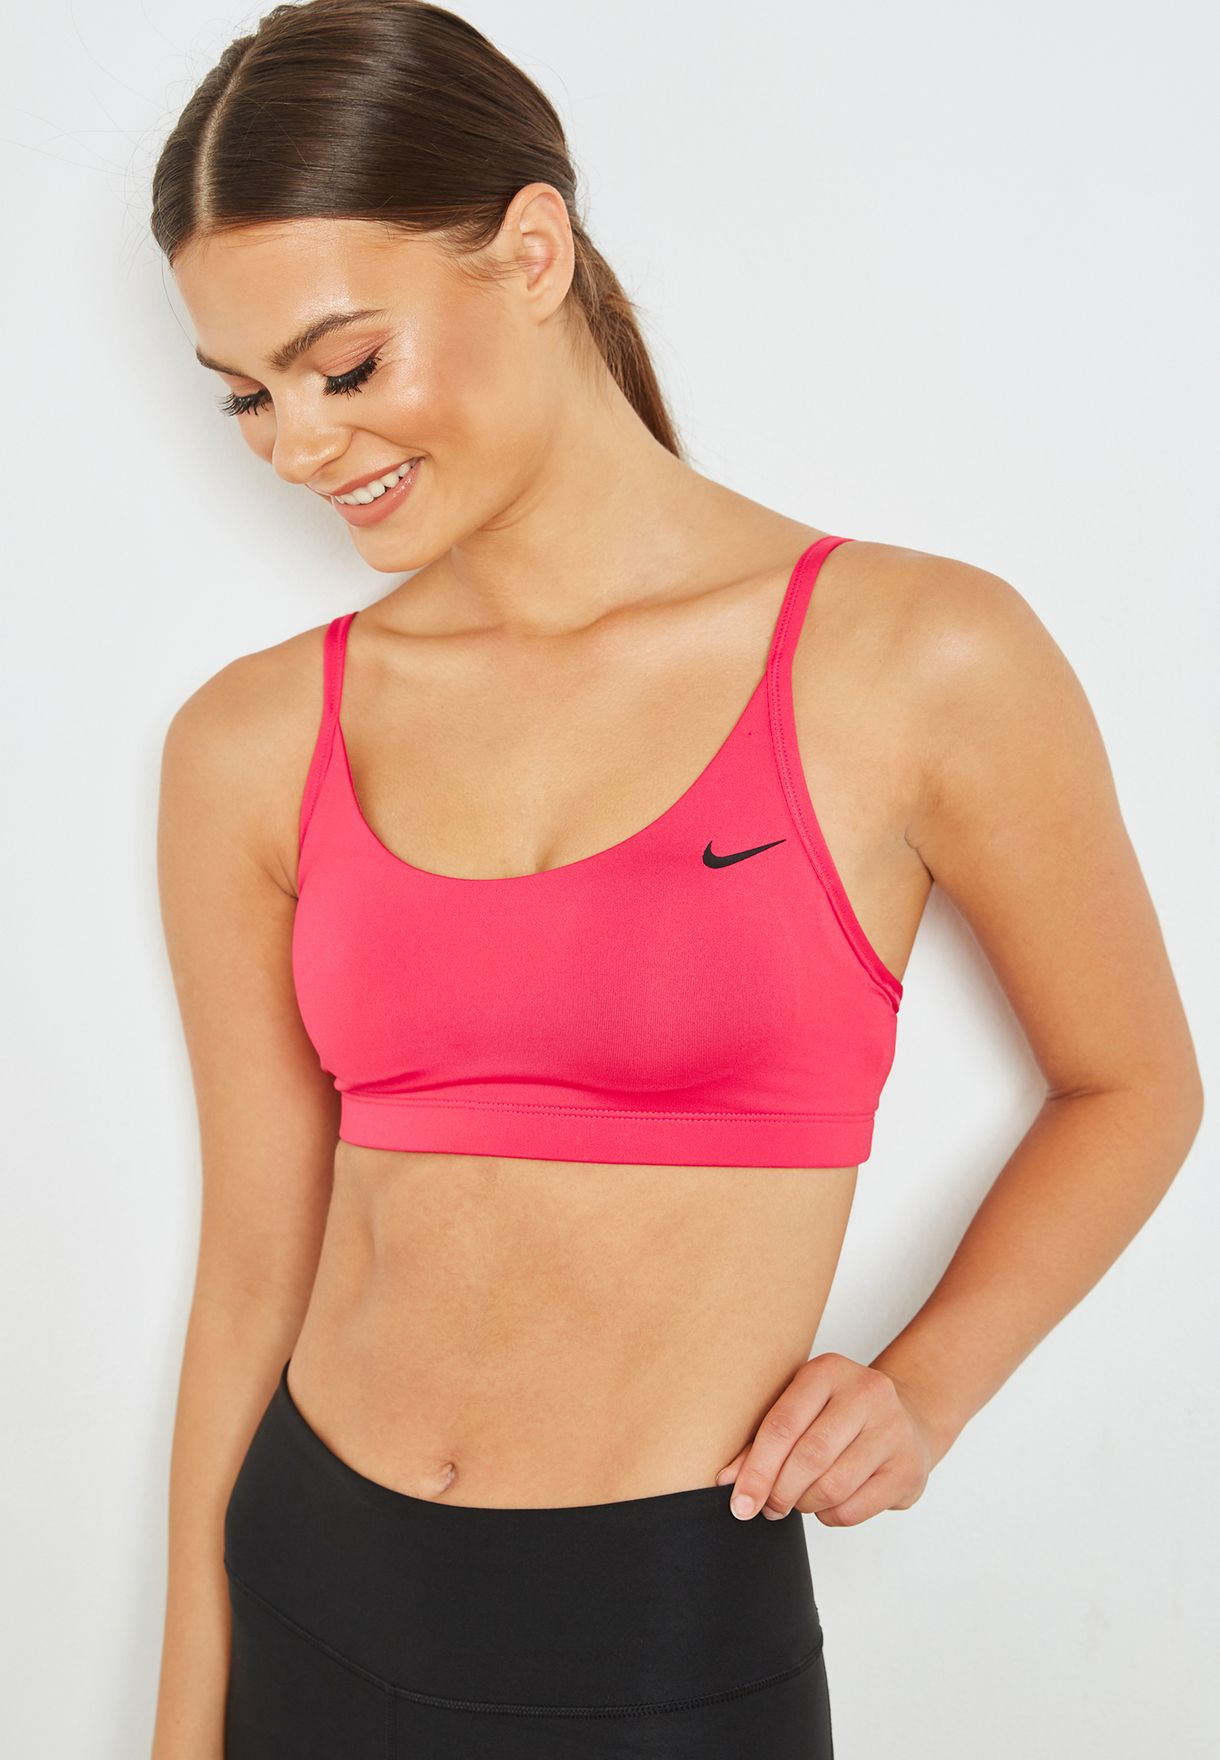 42f5527e4c39c Shop Nike pink Victory Favorites Strappy Bra 924815-666 for Women in Kuwait  - NI727AT21WJY